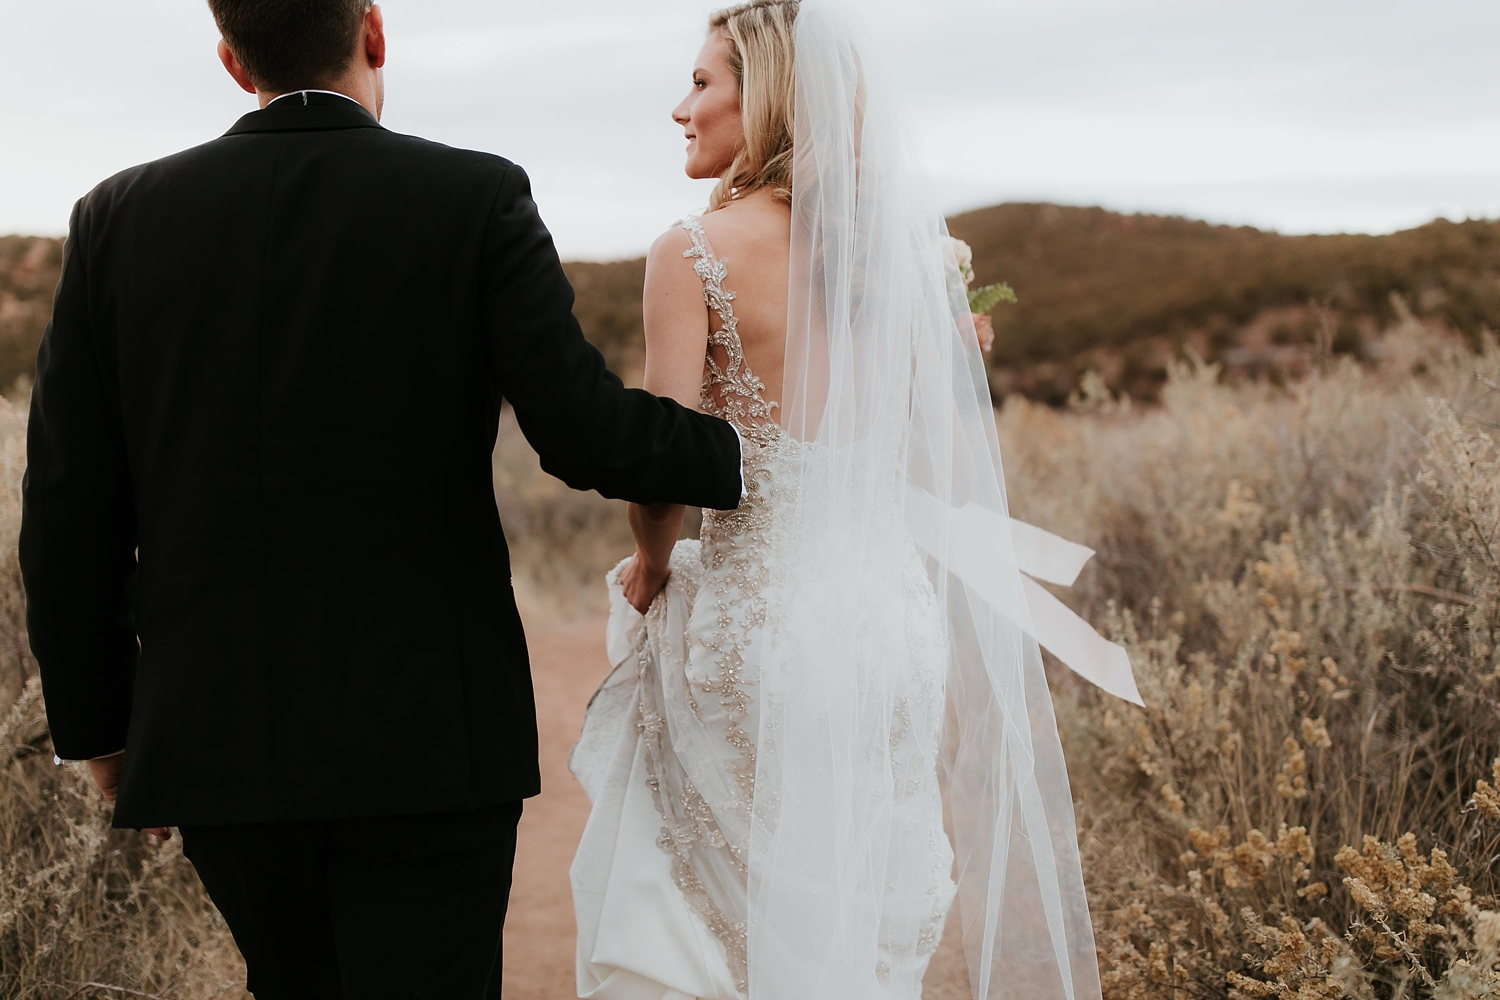 Alicia+lucia+photography+-+albuquerque+wedding+photographer+-+santa+fe+wedding+photography+-+new+mexico+wedding+photographer+-+la+fonda+wedding+-+la+fonda+winter+wedding_0084.jpg